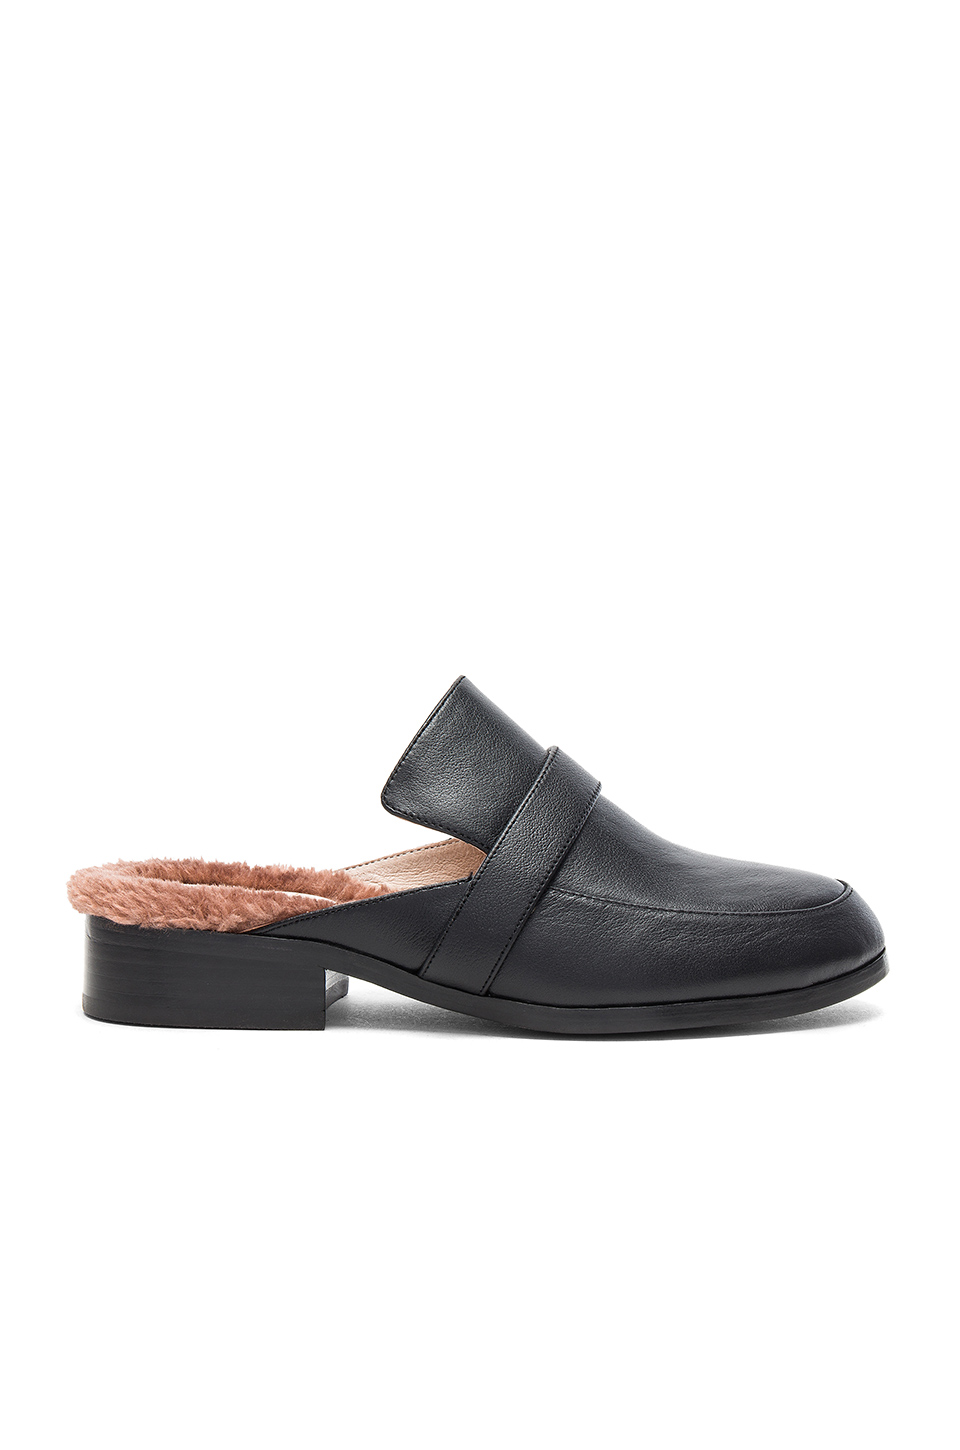 RAYE Kala Faux Fur Mule in Black Leather